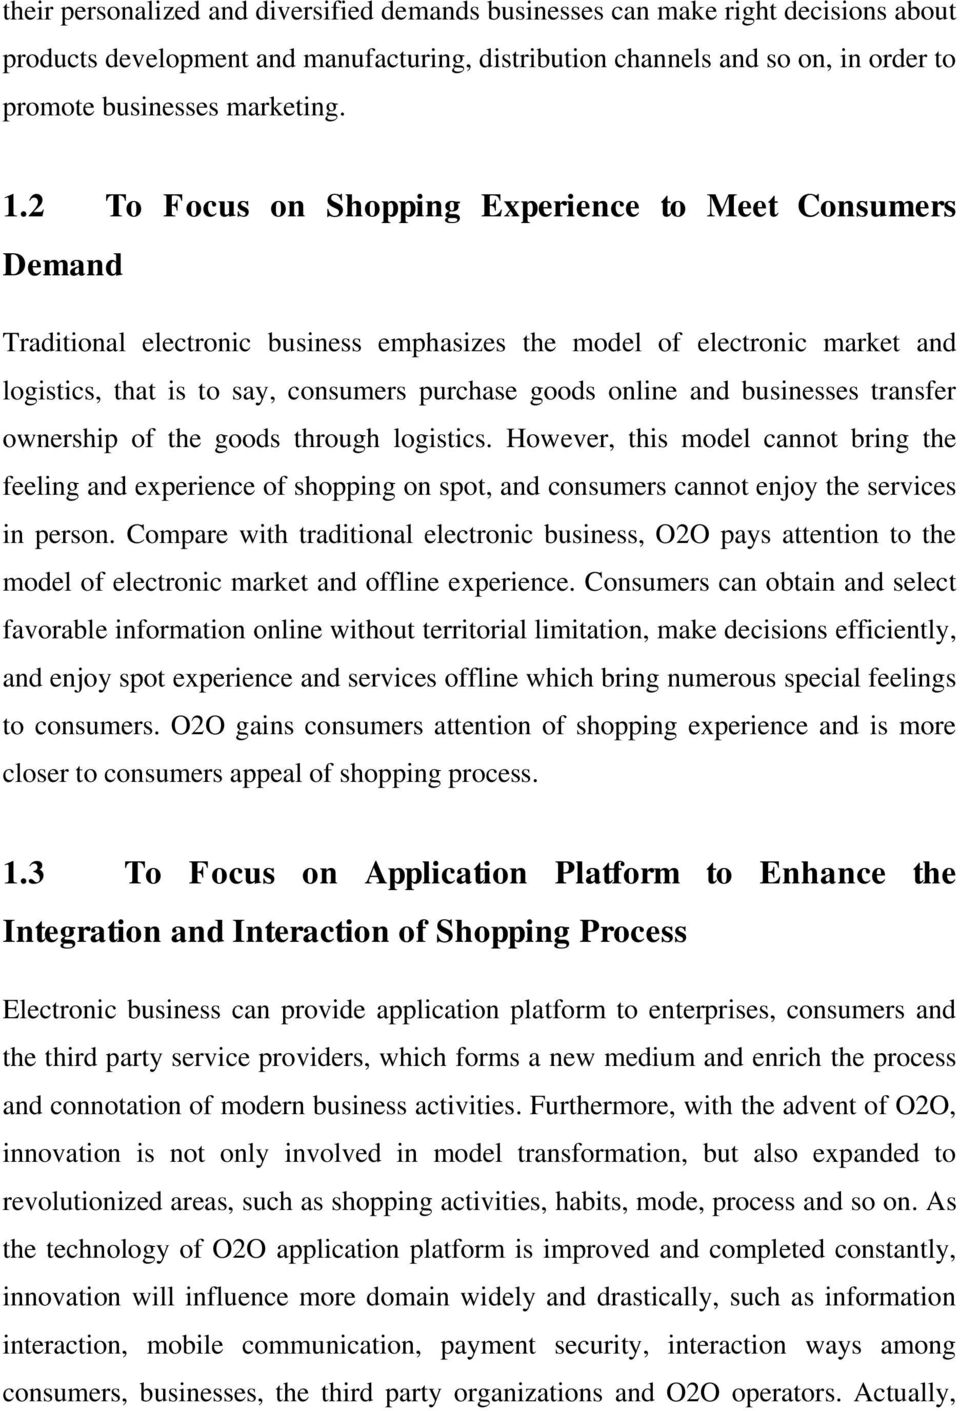 and businesses transfer ownership of the goods through logistics. However, this model cannot bring the feeling and experience of shopping on spot, and consumers cannot enjoy the services in person.